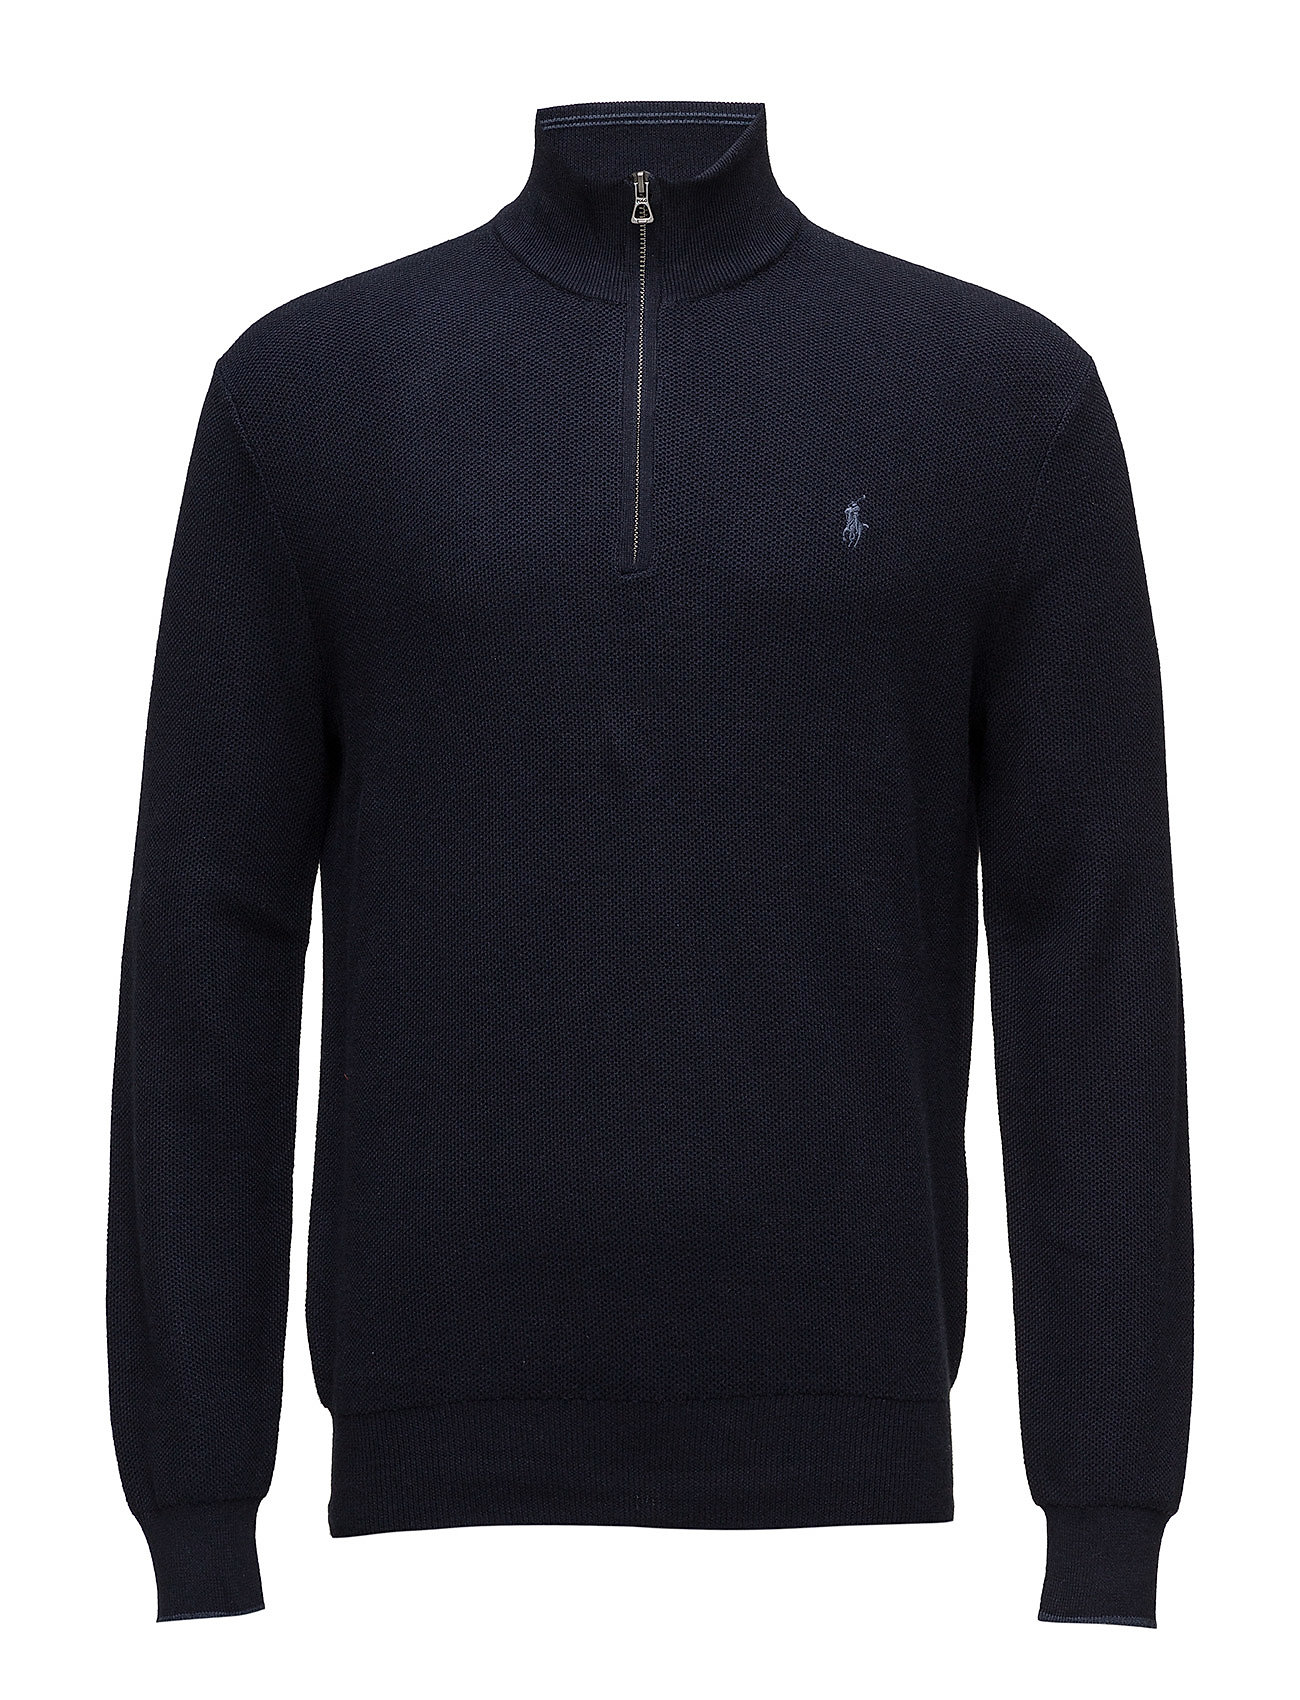 Polo Ralph Lauren Cotton Half-Zip Sweater - NAVY HEATHER